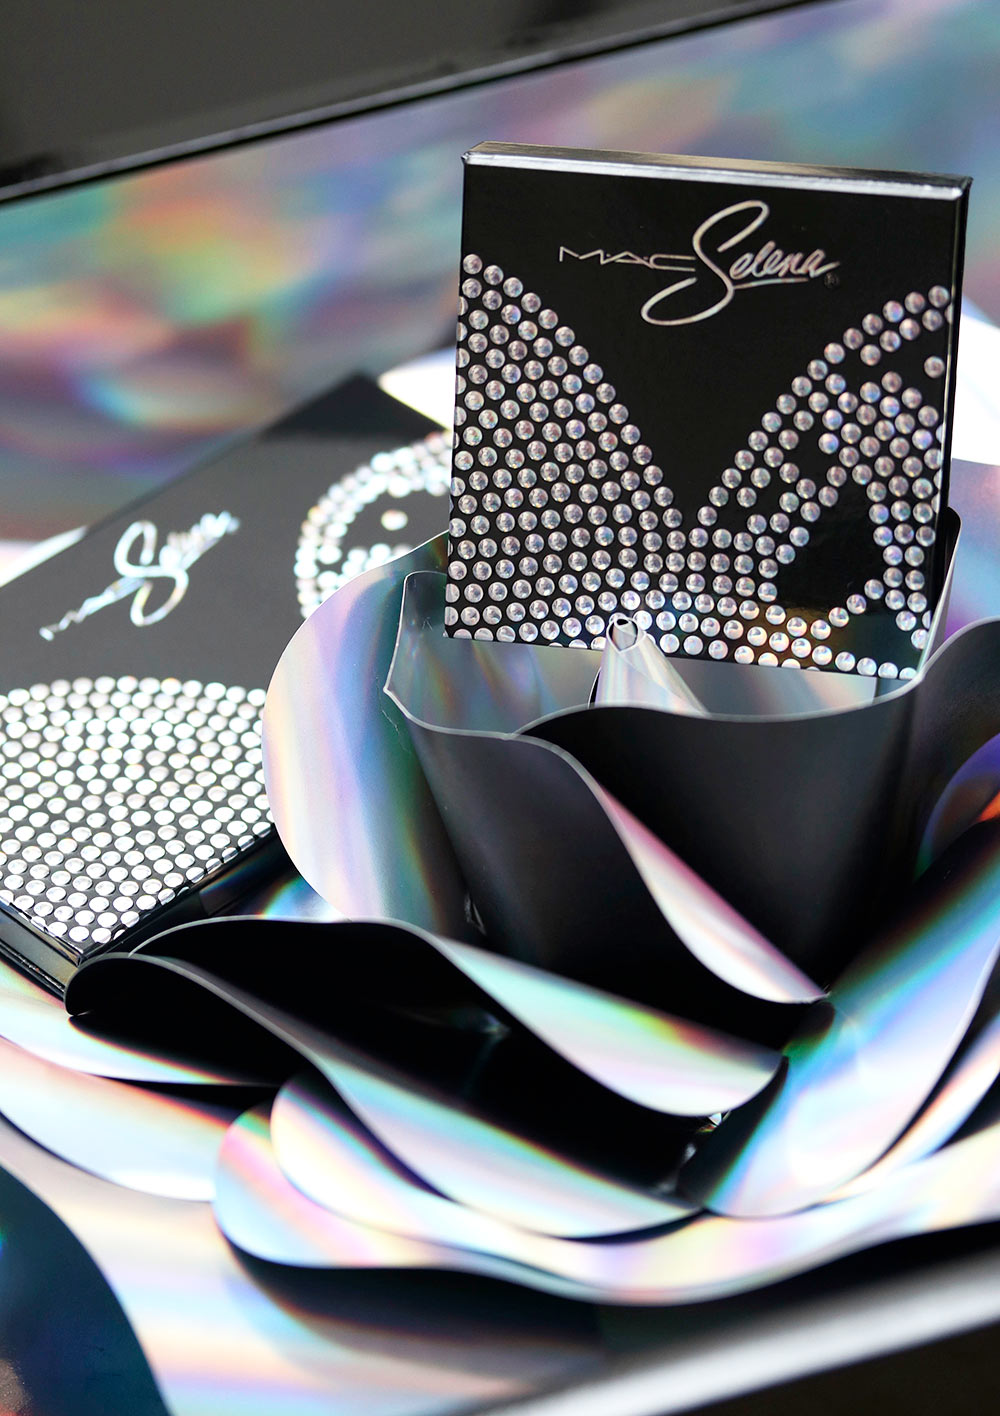 mac selena la reina packaging